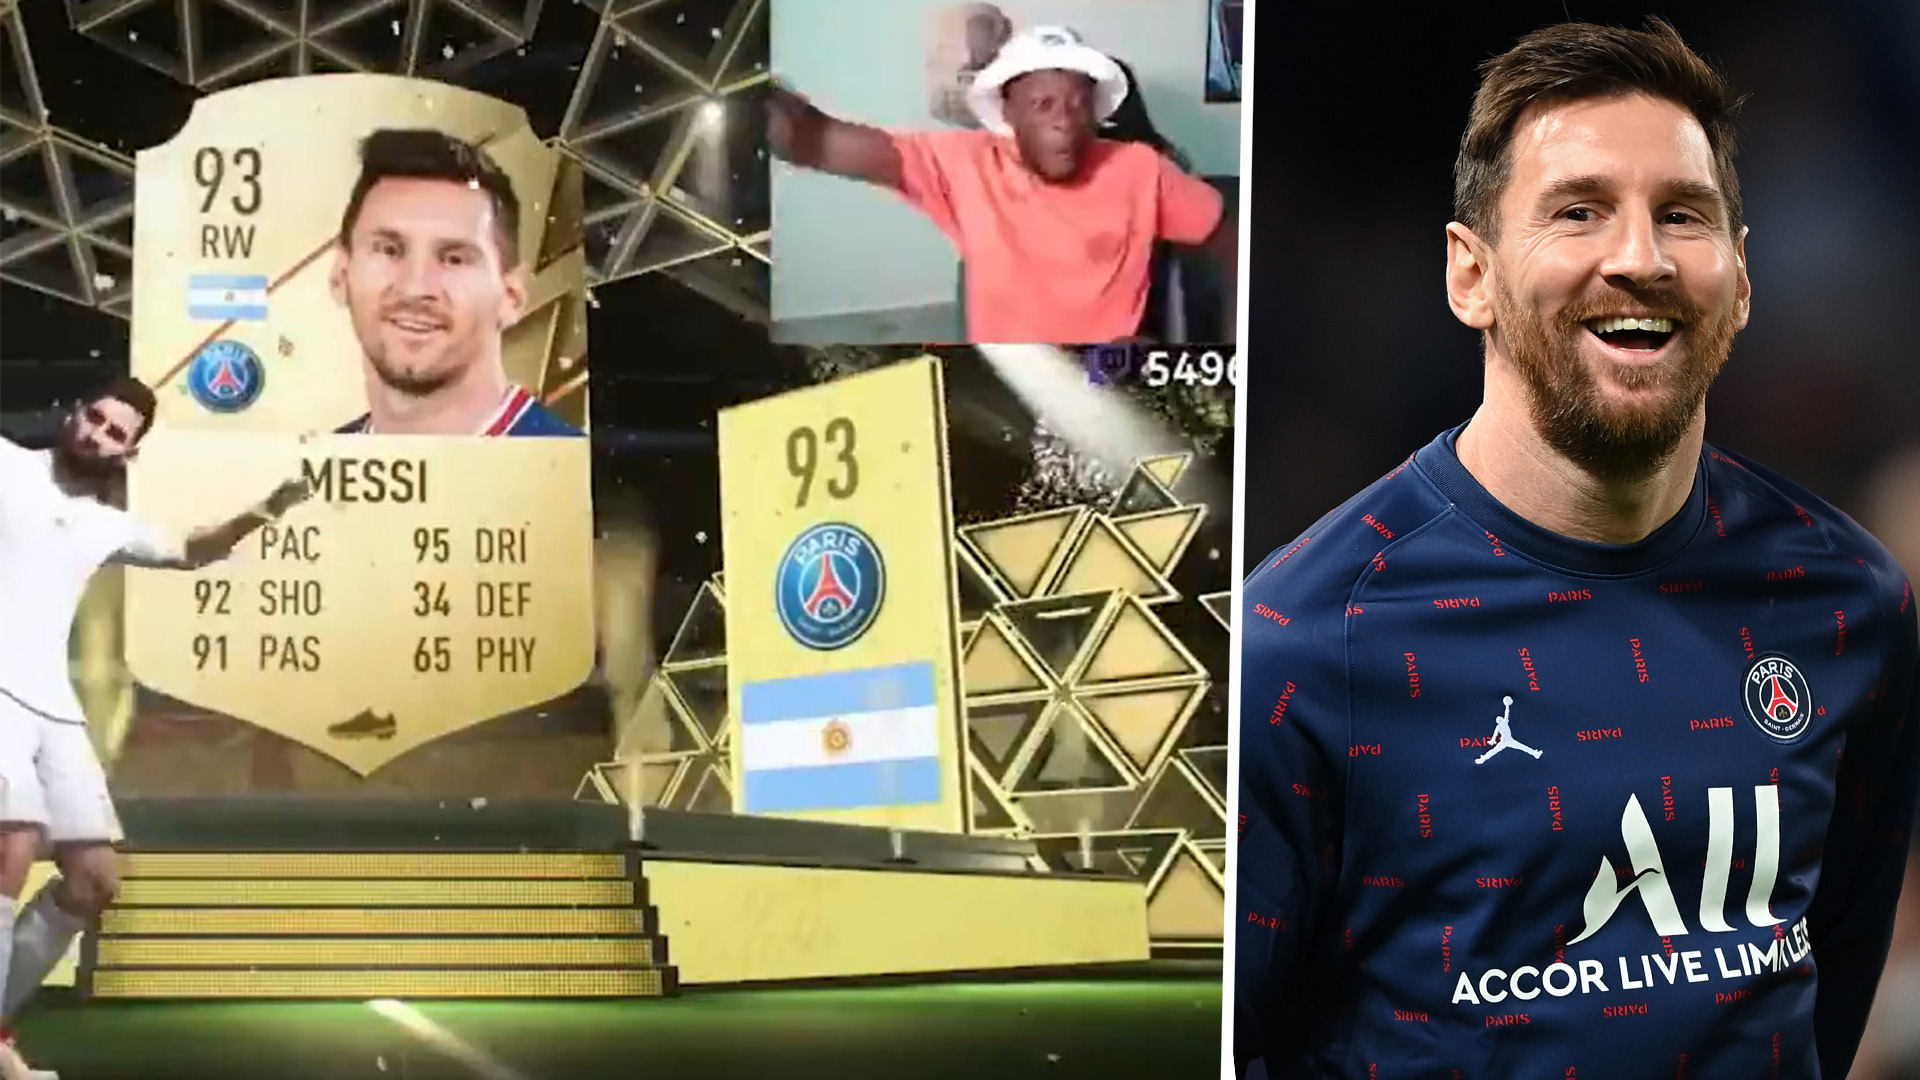 Watch Alphonso Davies go wild as he packs Messi in FIFA 22 Ultimate Team